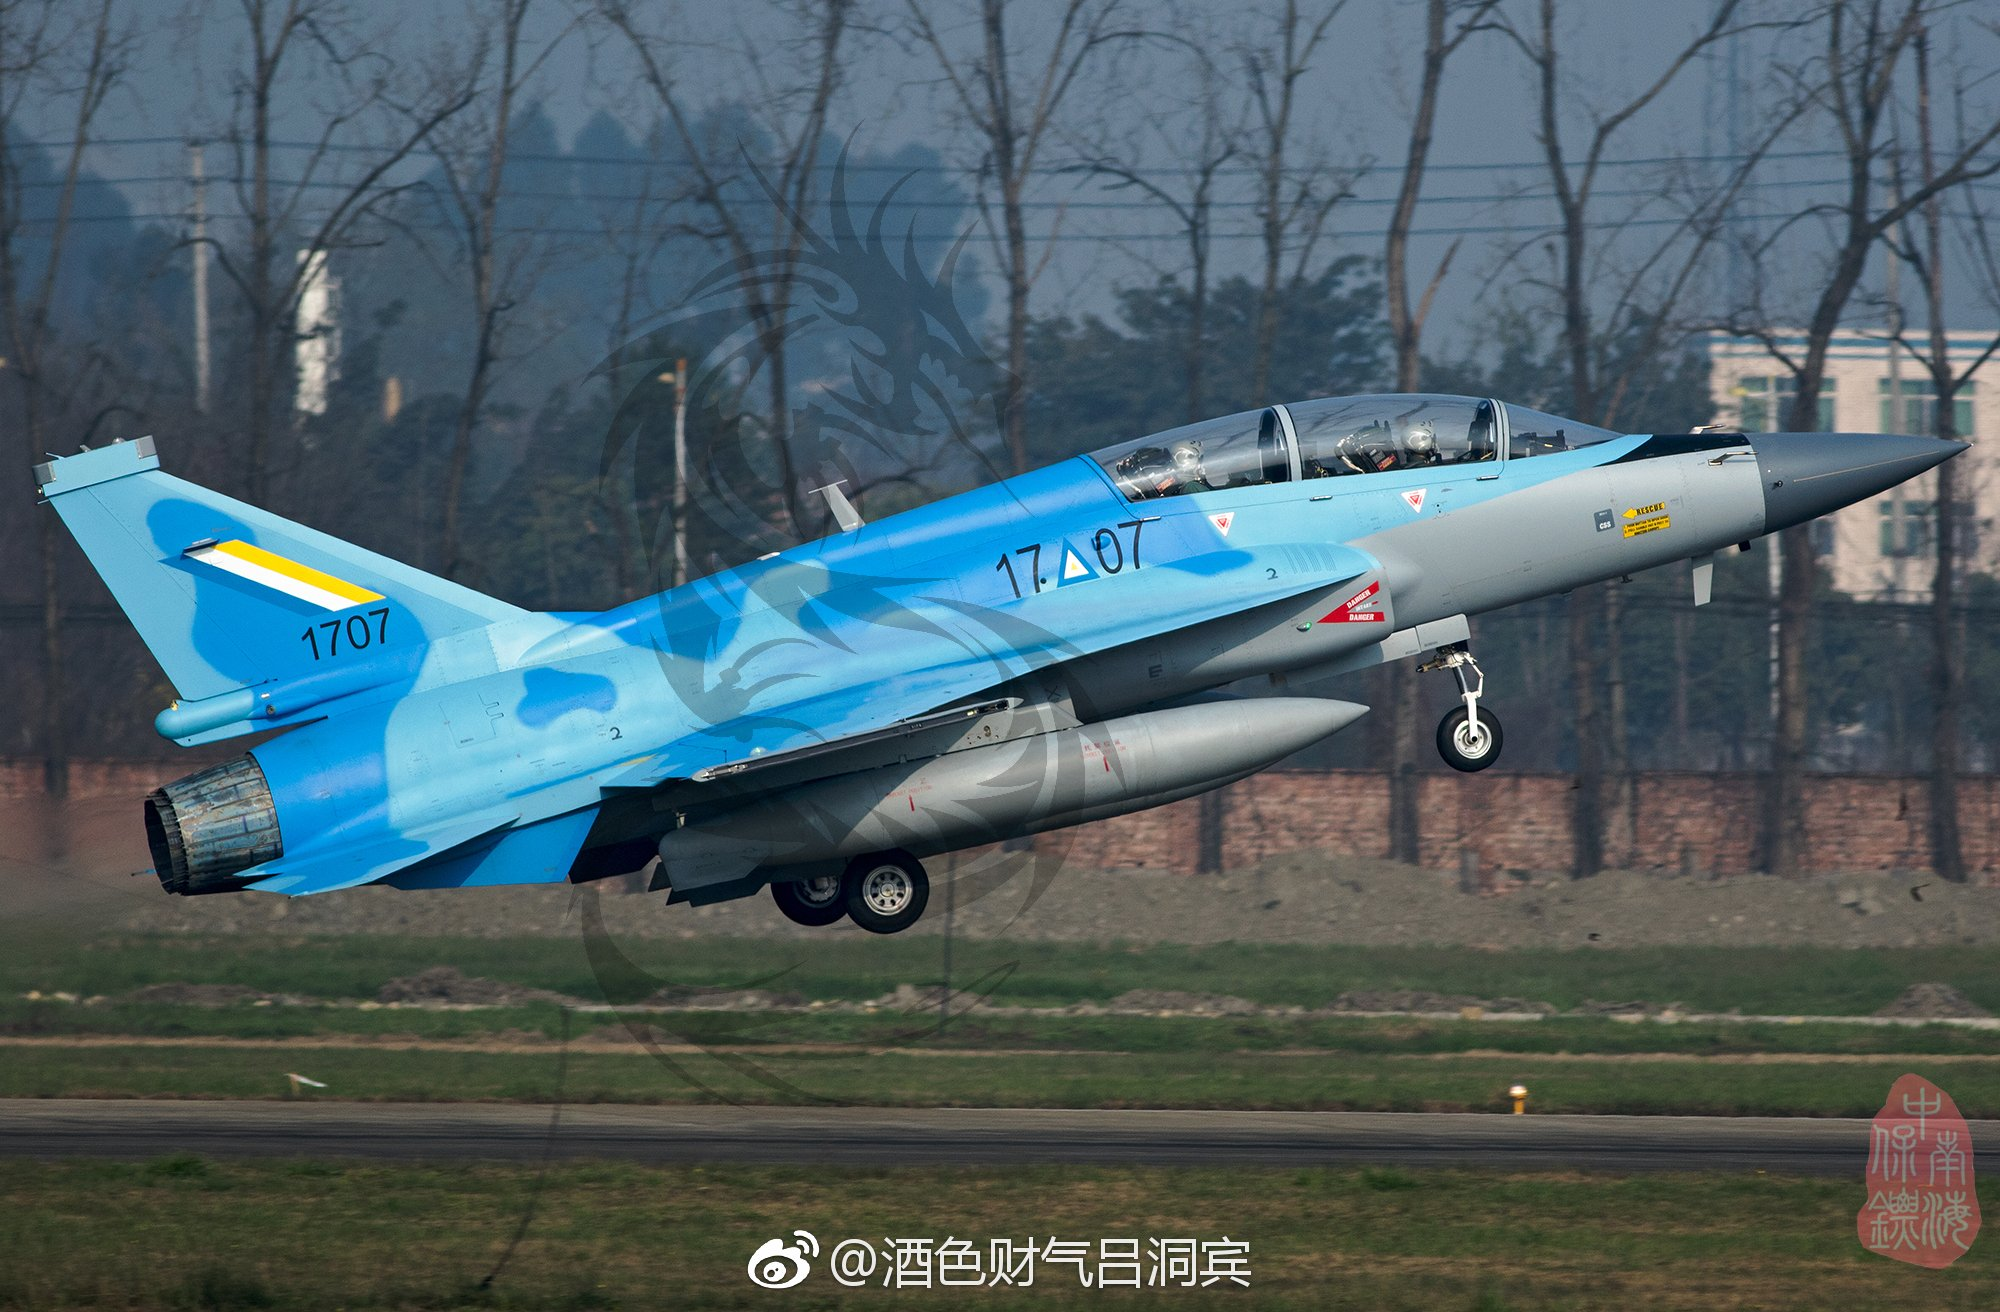 Myanmar Air Force Receives First Two JF-17B Thunder Fighter Trainer Aircraft